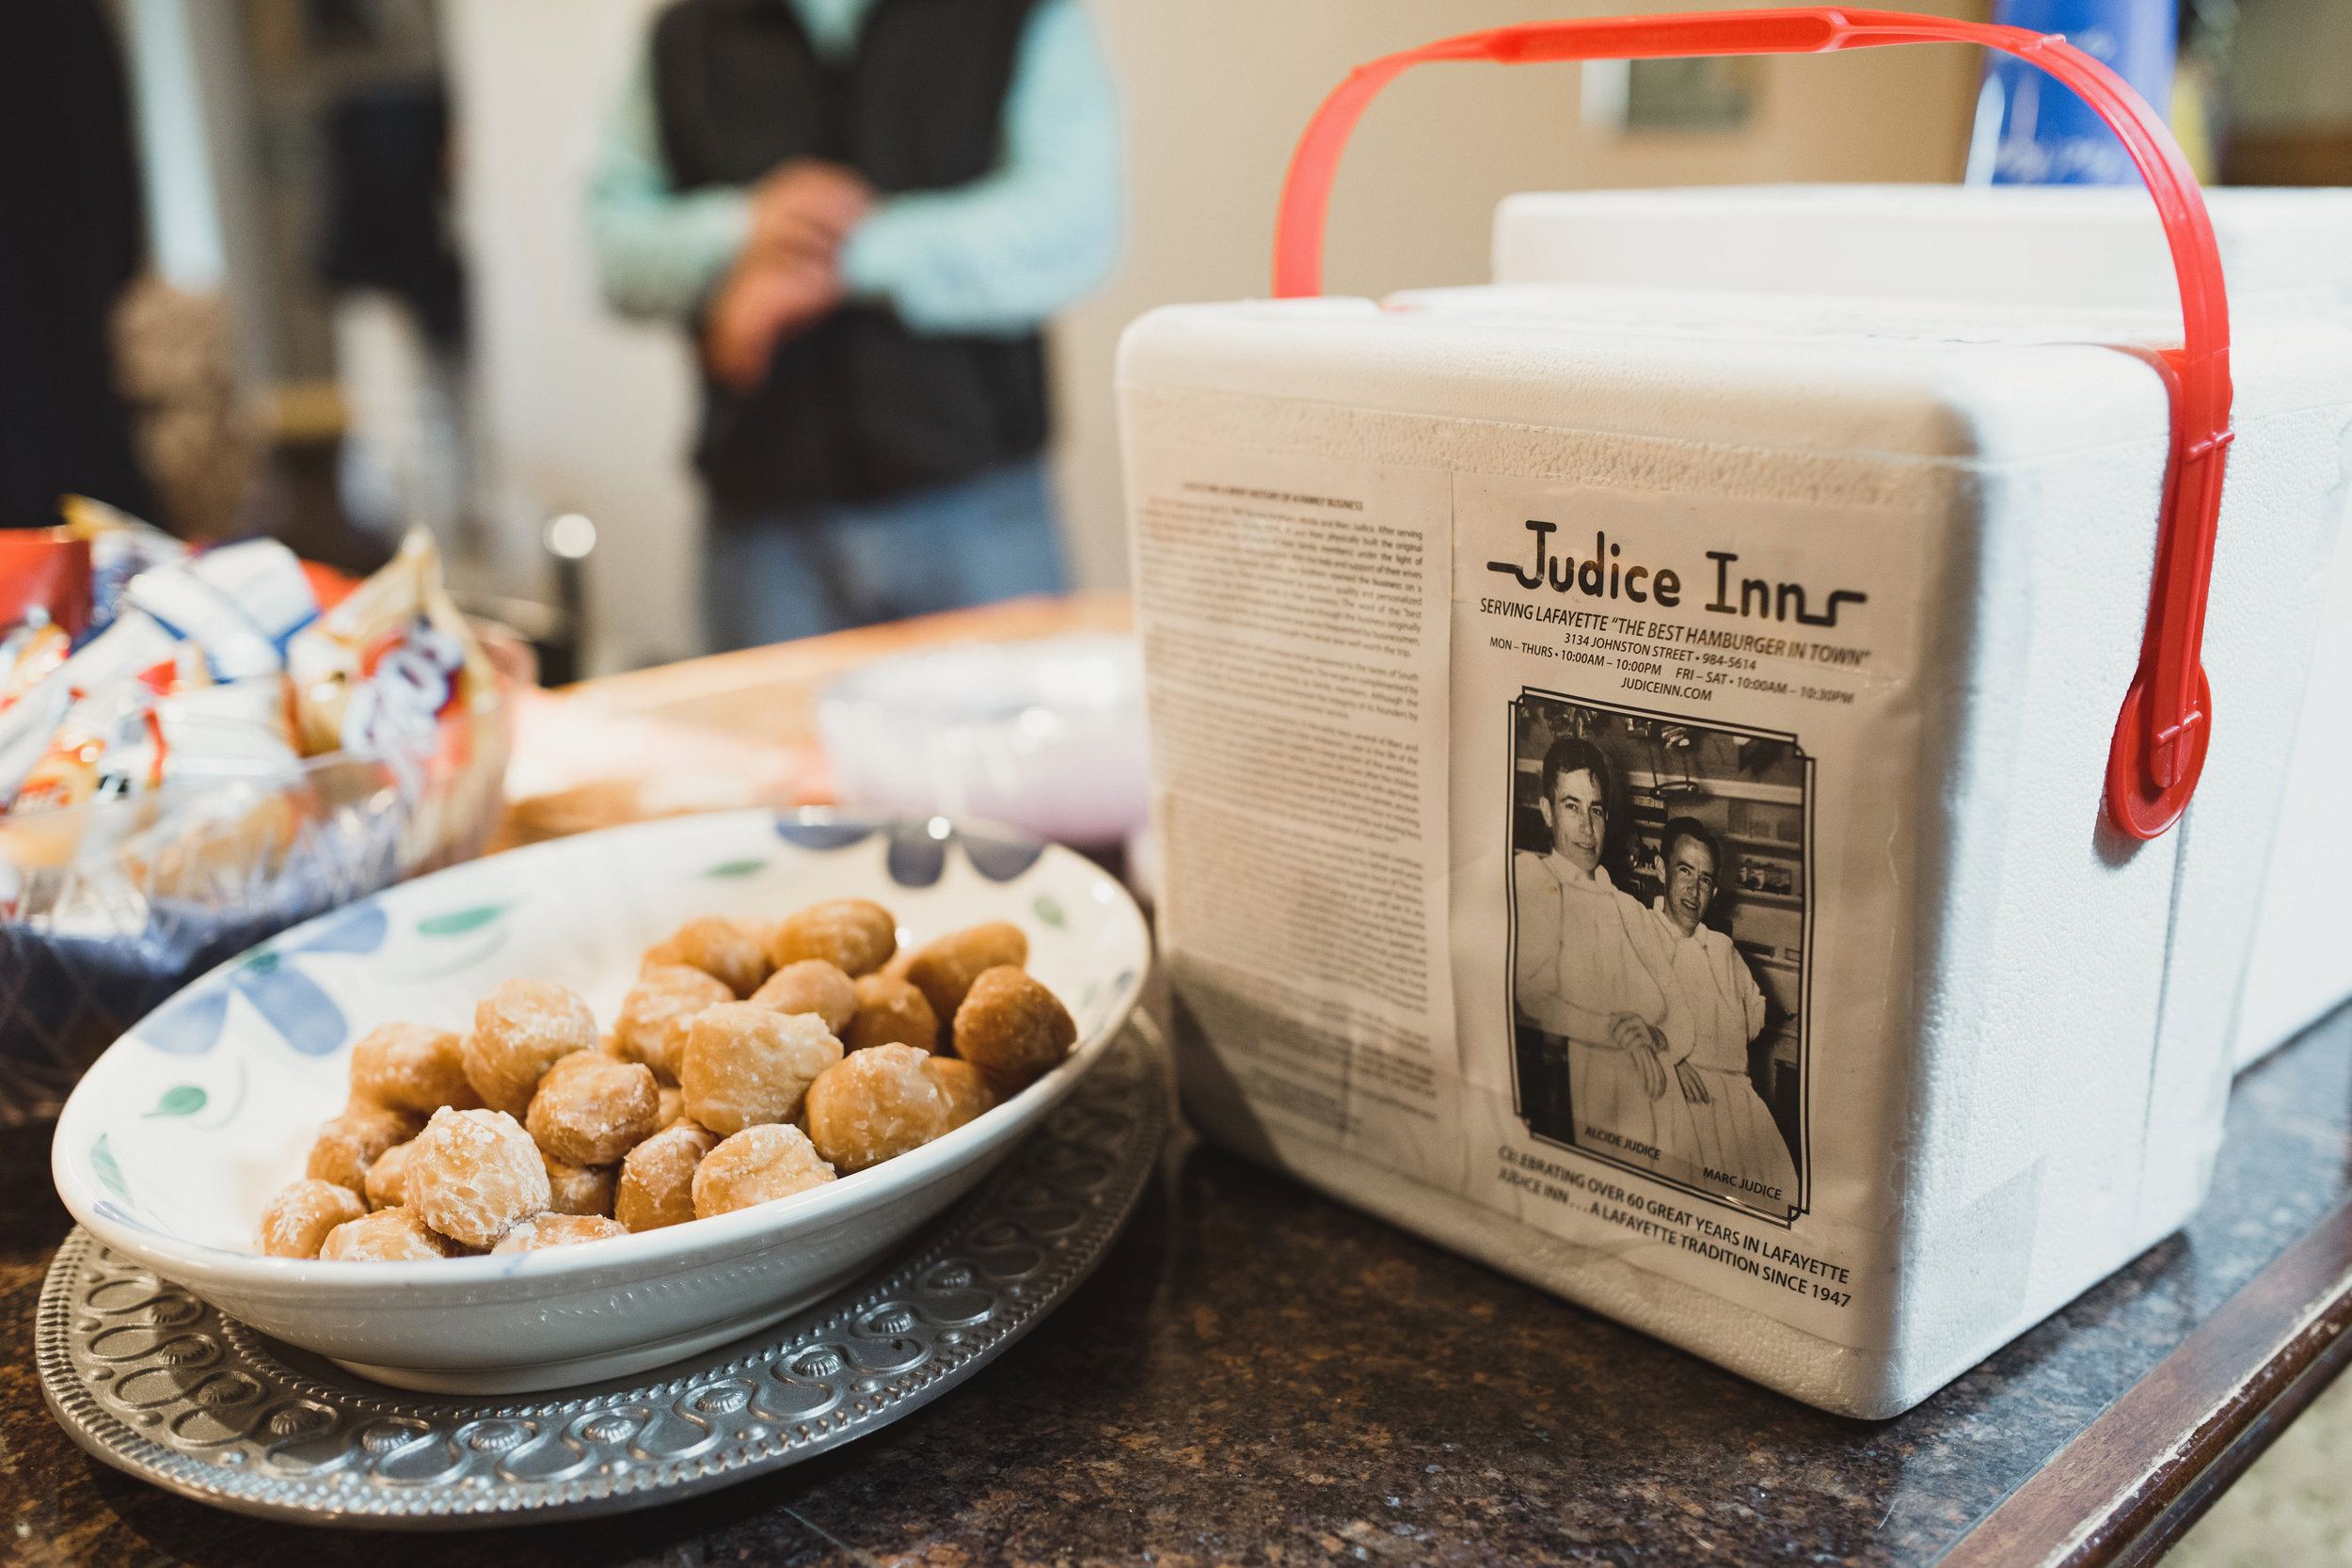 Southern Fete, Southern Wedding, Judice Inn, Donuts, Kimbrali Photography, Occasions by Gwen